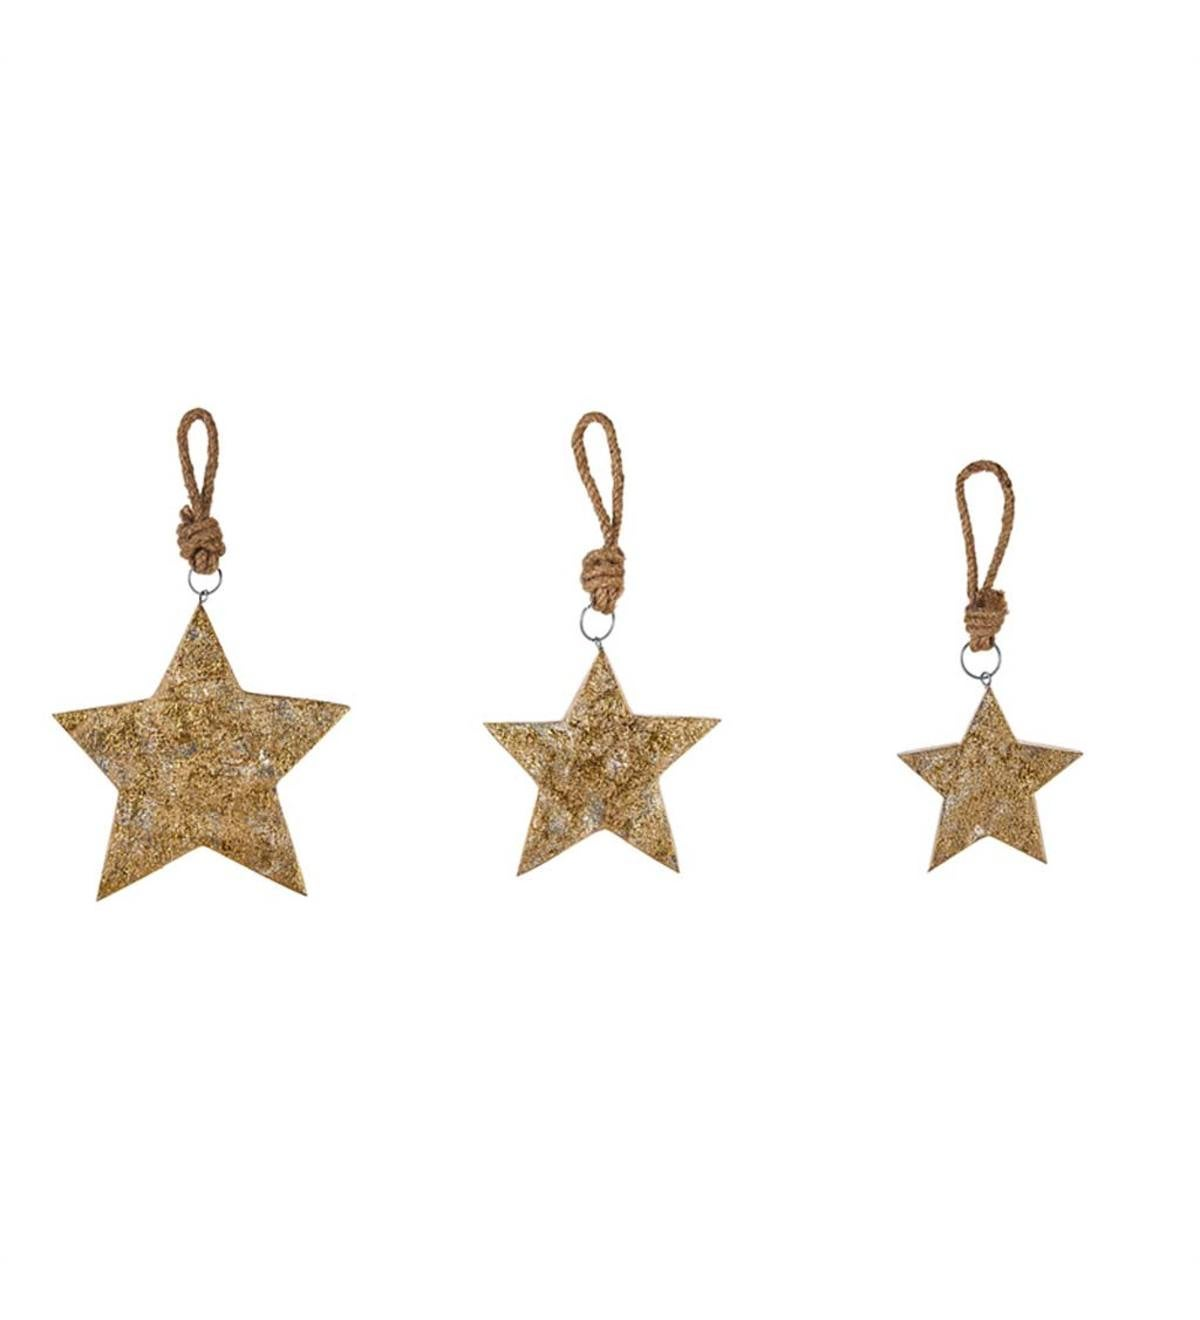 Gold and Silver Wooden Star Ornaments, Set of 3